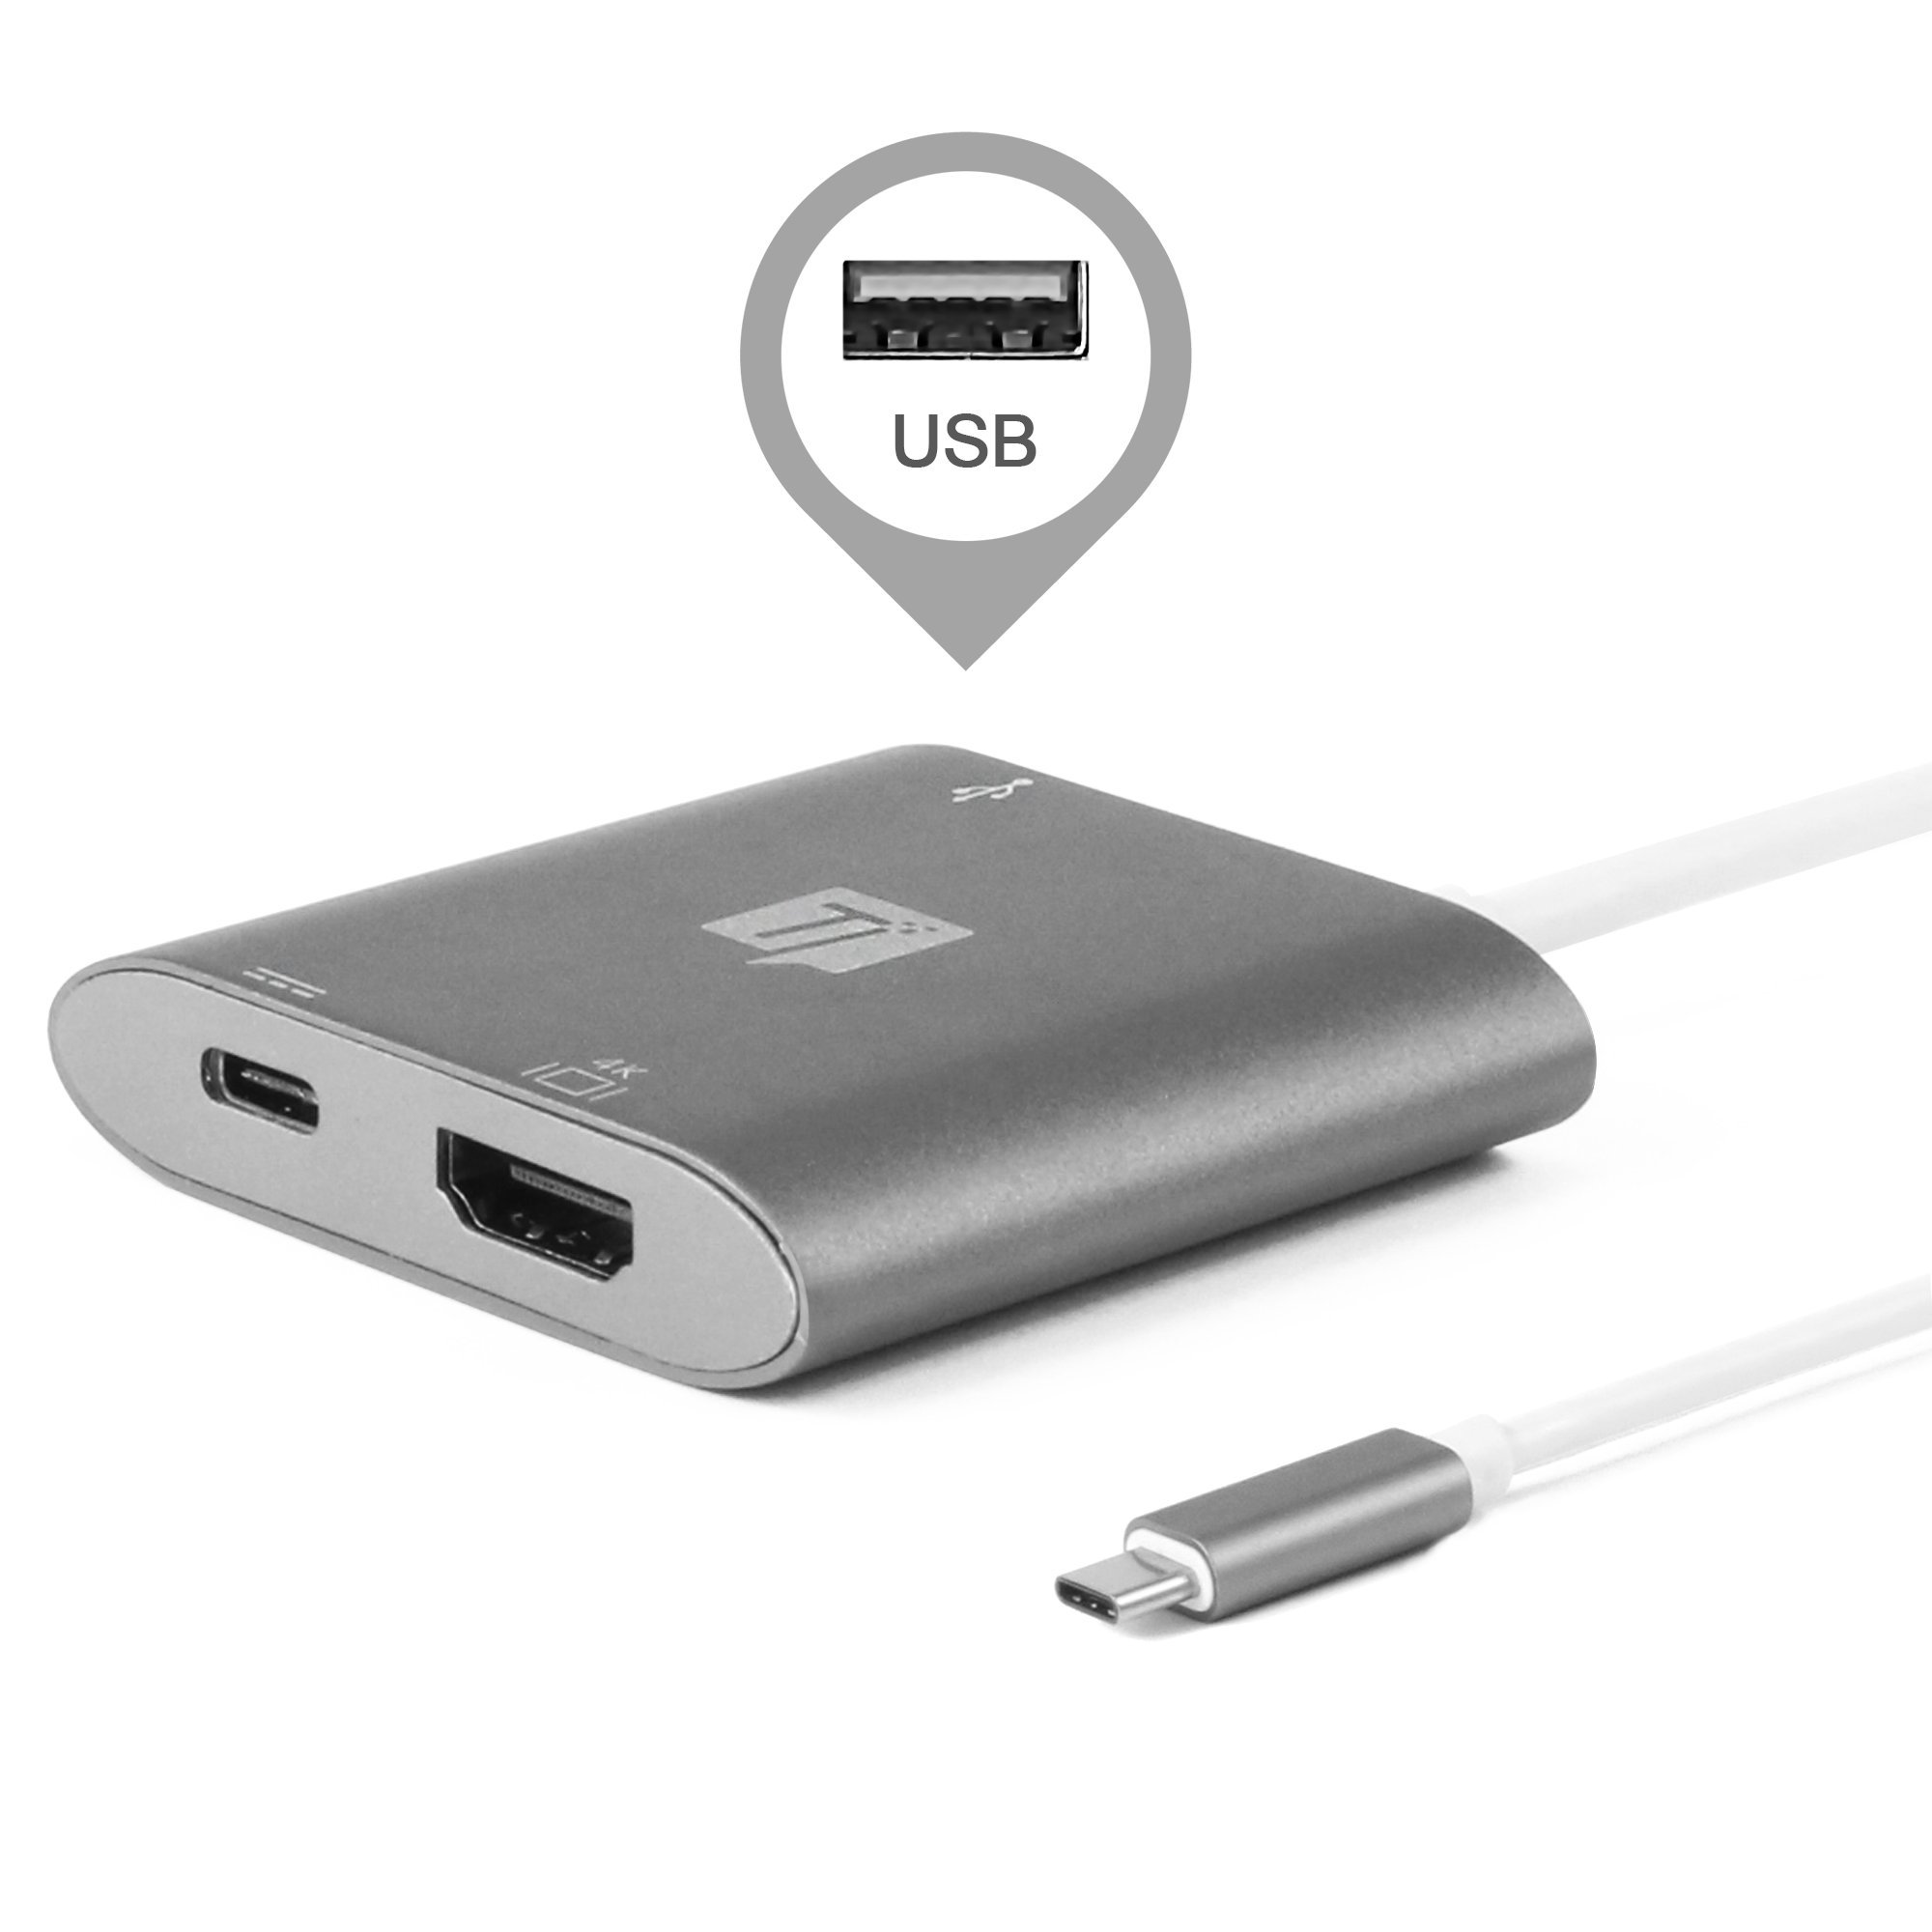 Travel Inspira Type C Hub Adapter with USB-C to 4K HDMI Output/Power Delivery Charging Port/USB 3.0 Ports for New MacBook Pro Chromebook Samsung Galaxy Surface book and More Type C Devices